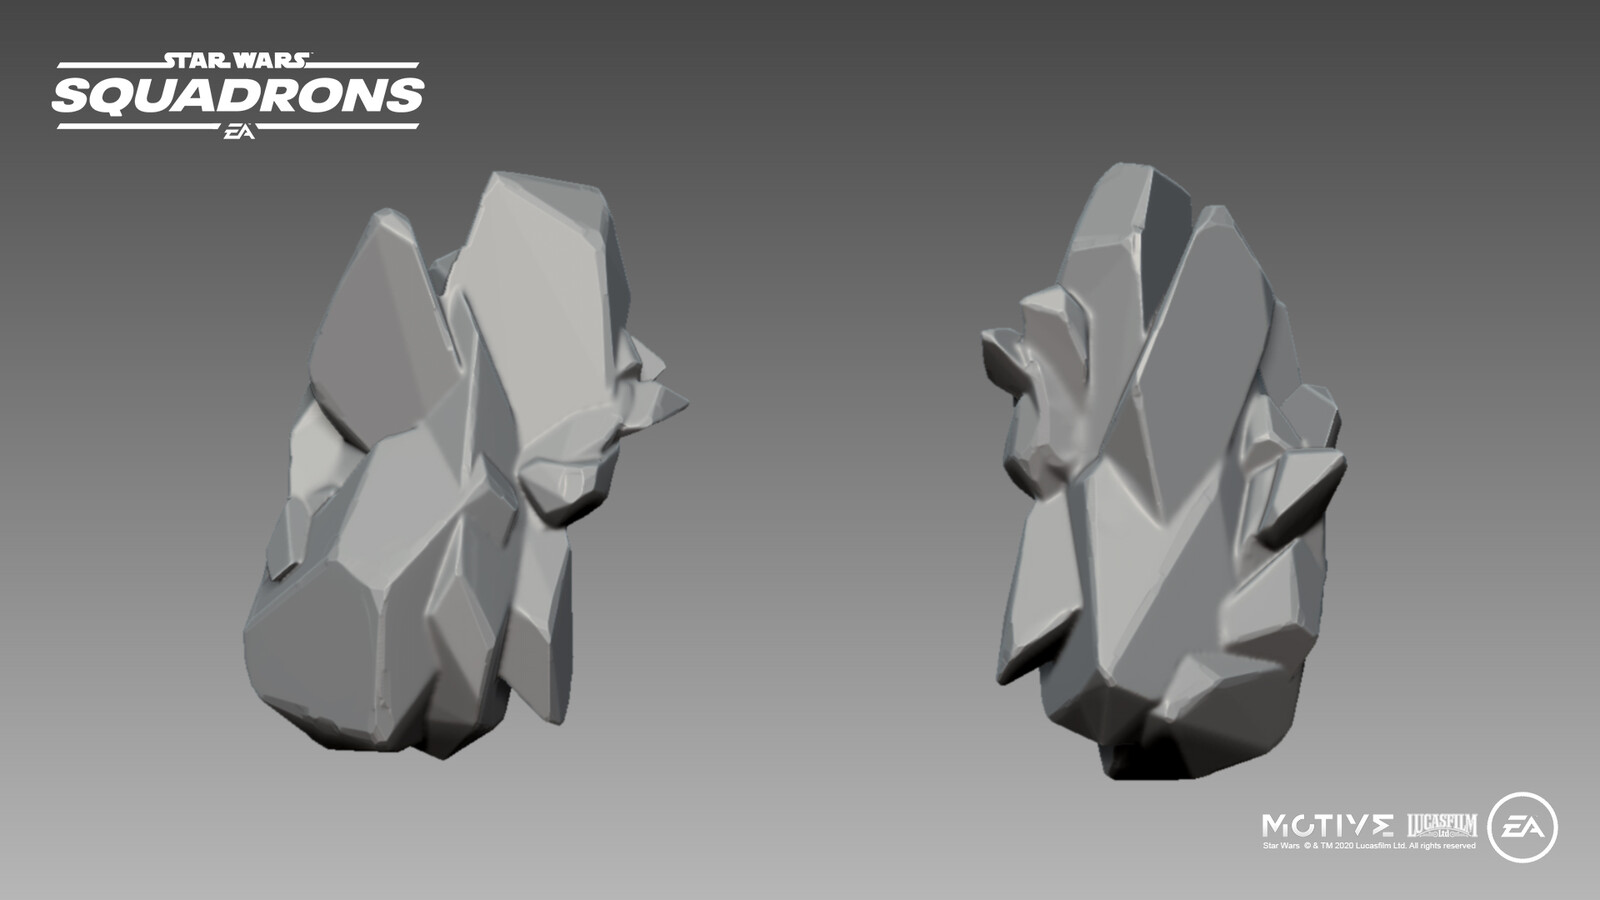 Zbrush sculpted crystal for the interior of the Fostar Haven excavation tunnels